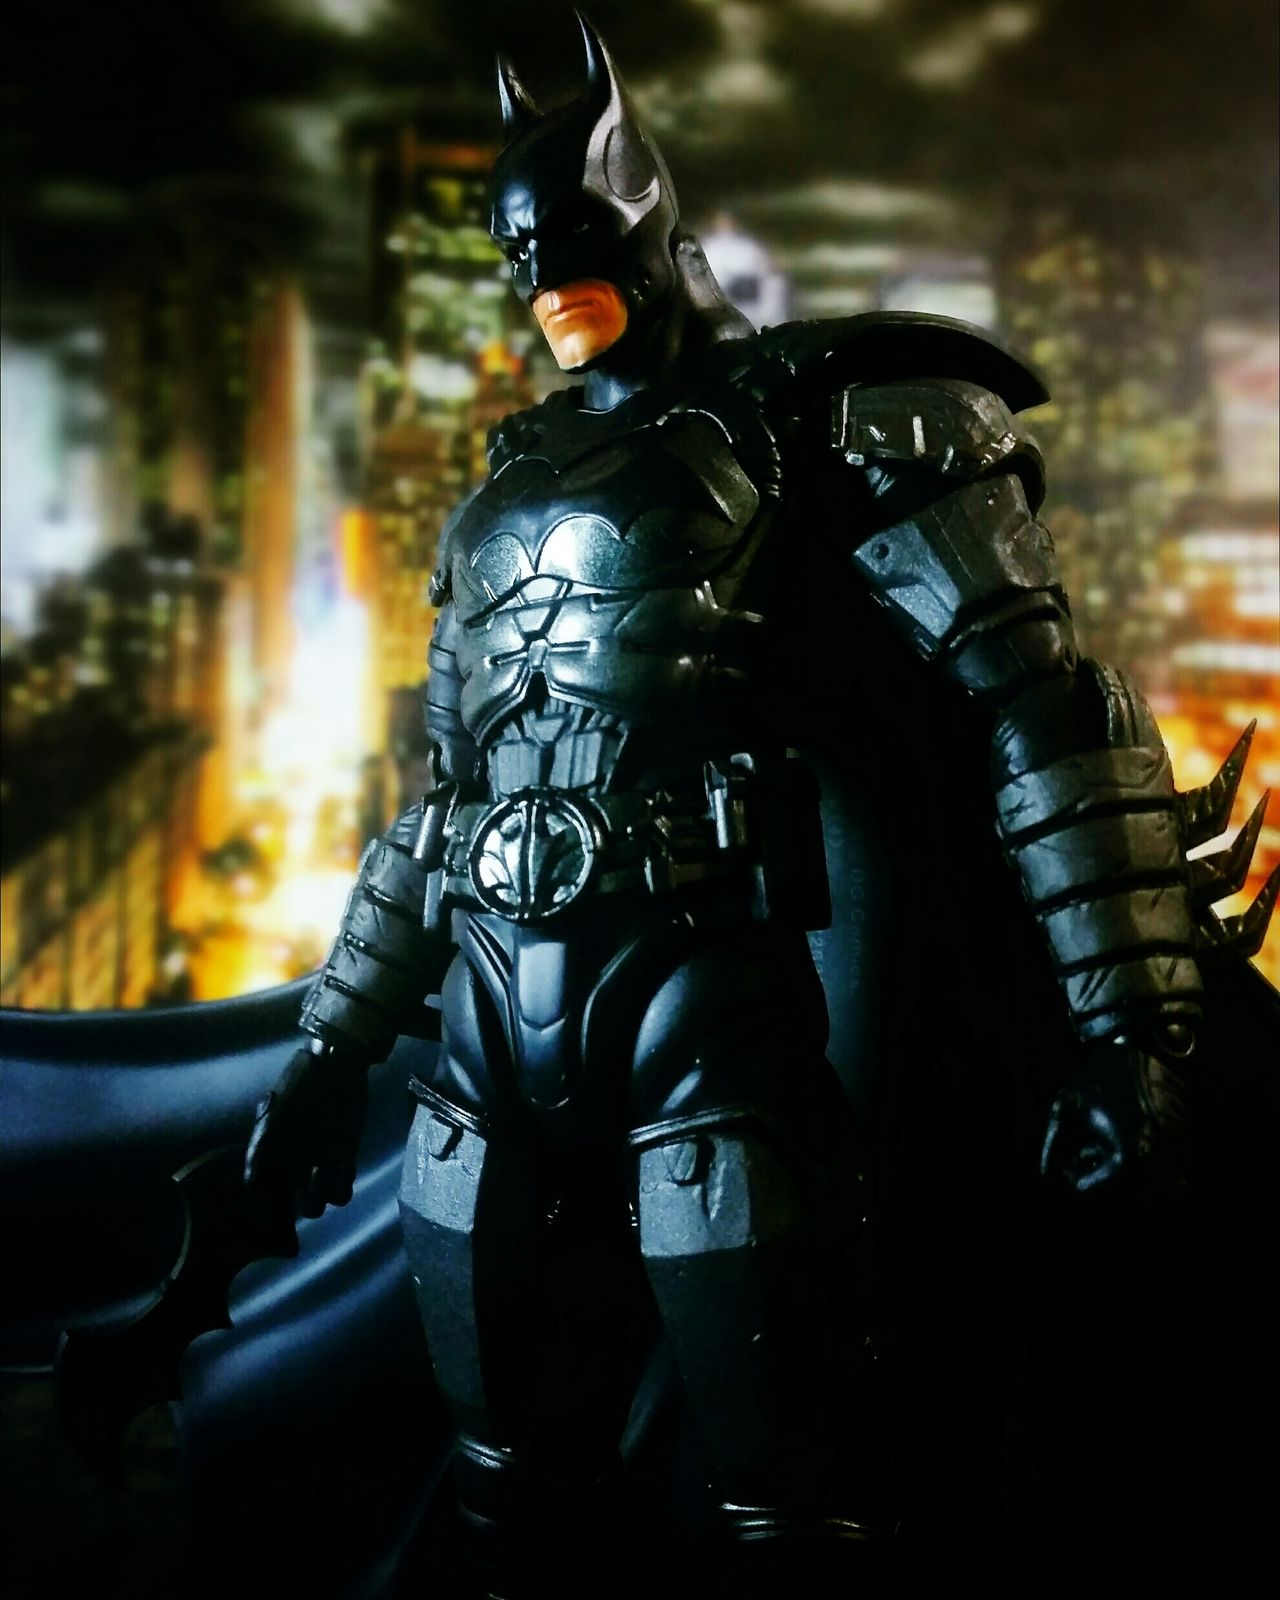 The Dark Knight Shf Sh Figuarts Injustice Batman BANDAI Toyphotography Toy Photography Action Figures Tamashiinations Toys DC Comics Super Heroes